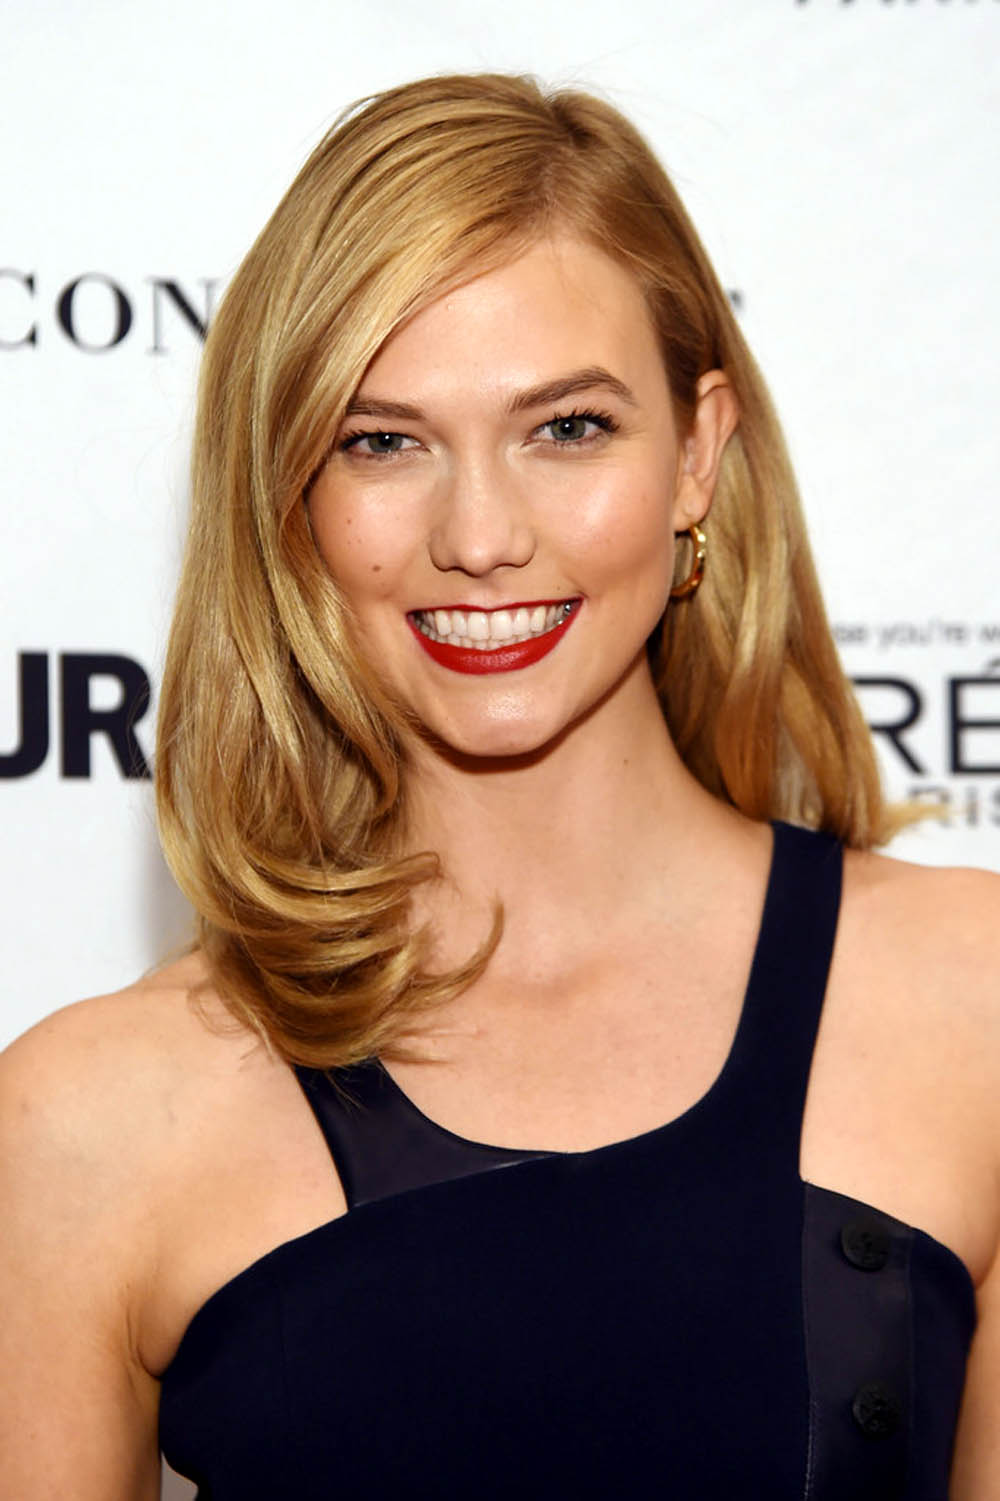 Karlie Kloss 2015 Glamour Women Of The Year Awards